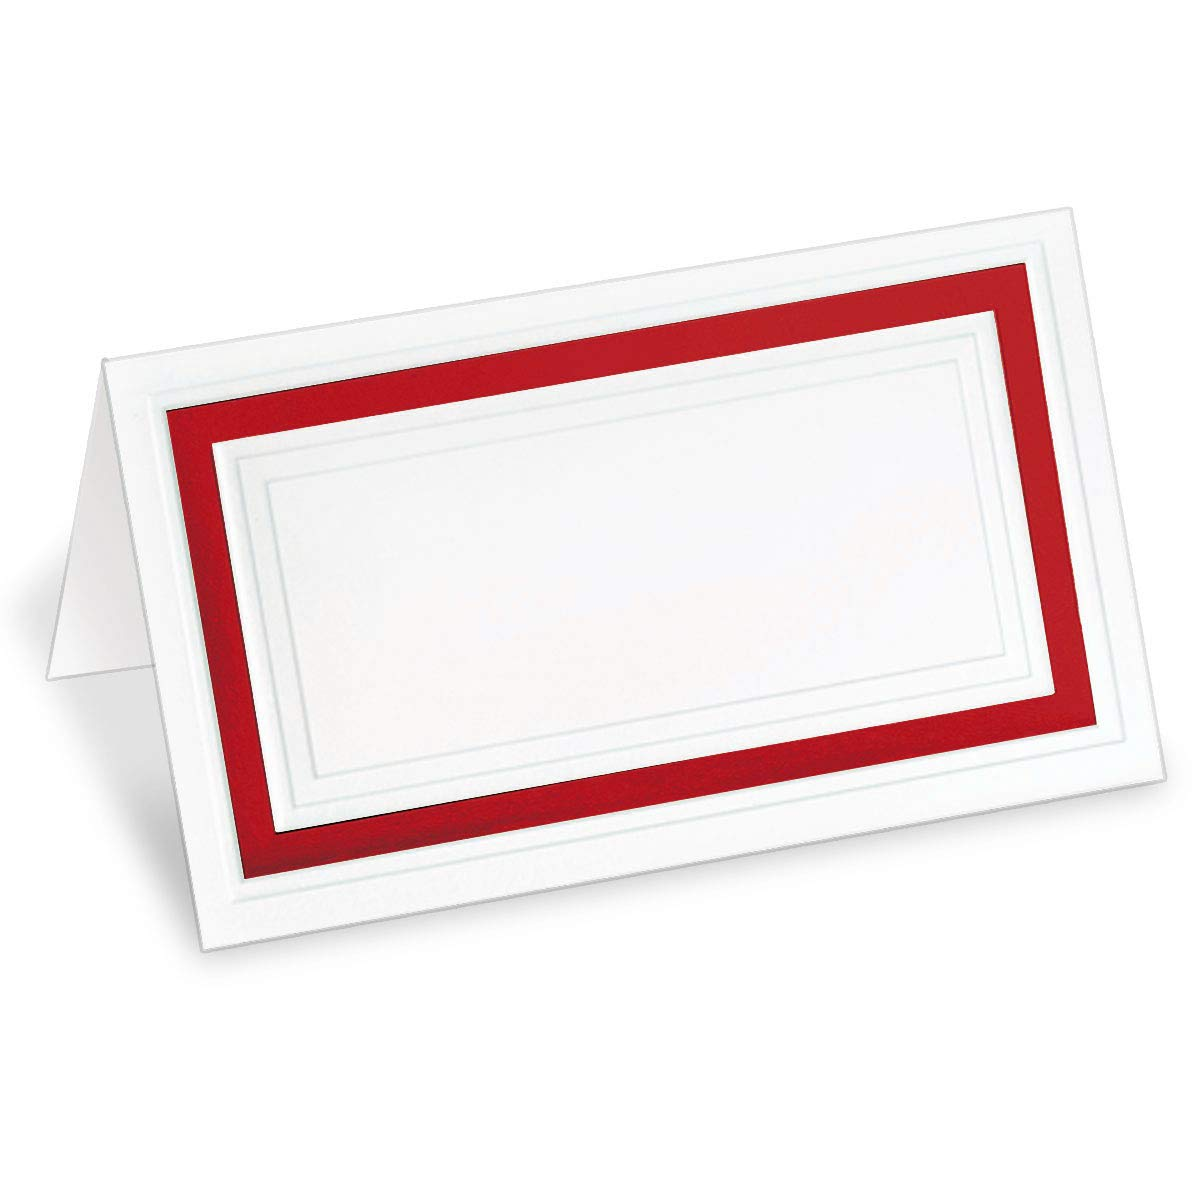 PaperDirect White 38lb Cover Stock Folded Place Cards with Red Foil Border, Micro-Perforated, 2'' x 3 1/2'', 400/Pack, Laser and Inkjet Compatible by PaperDirect